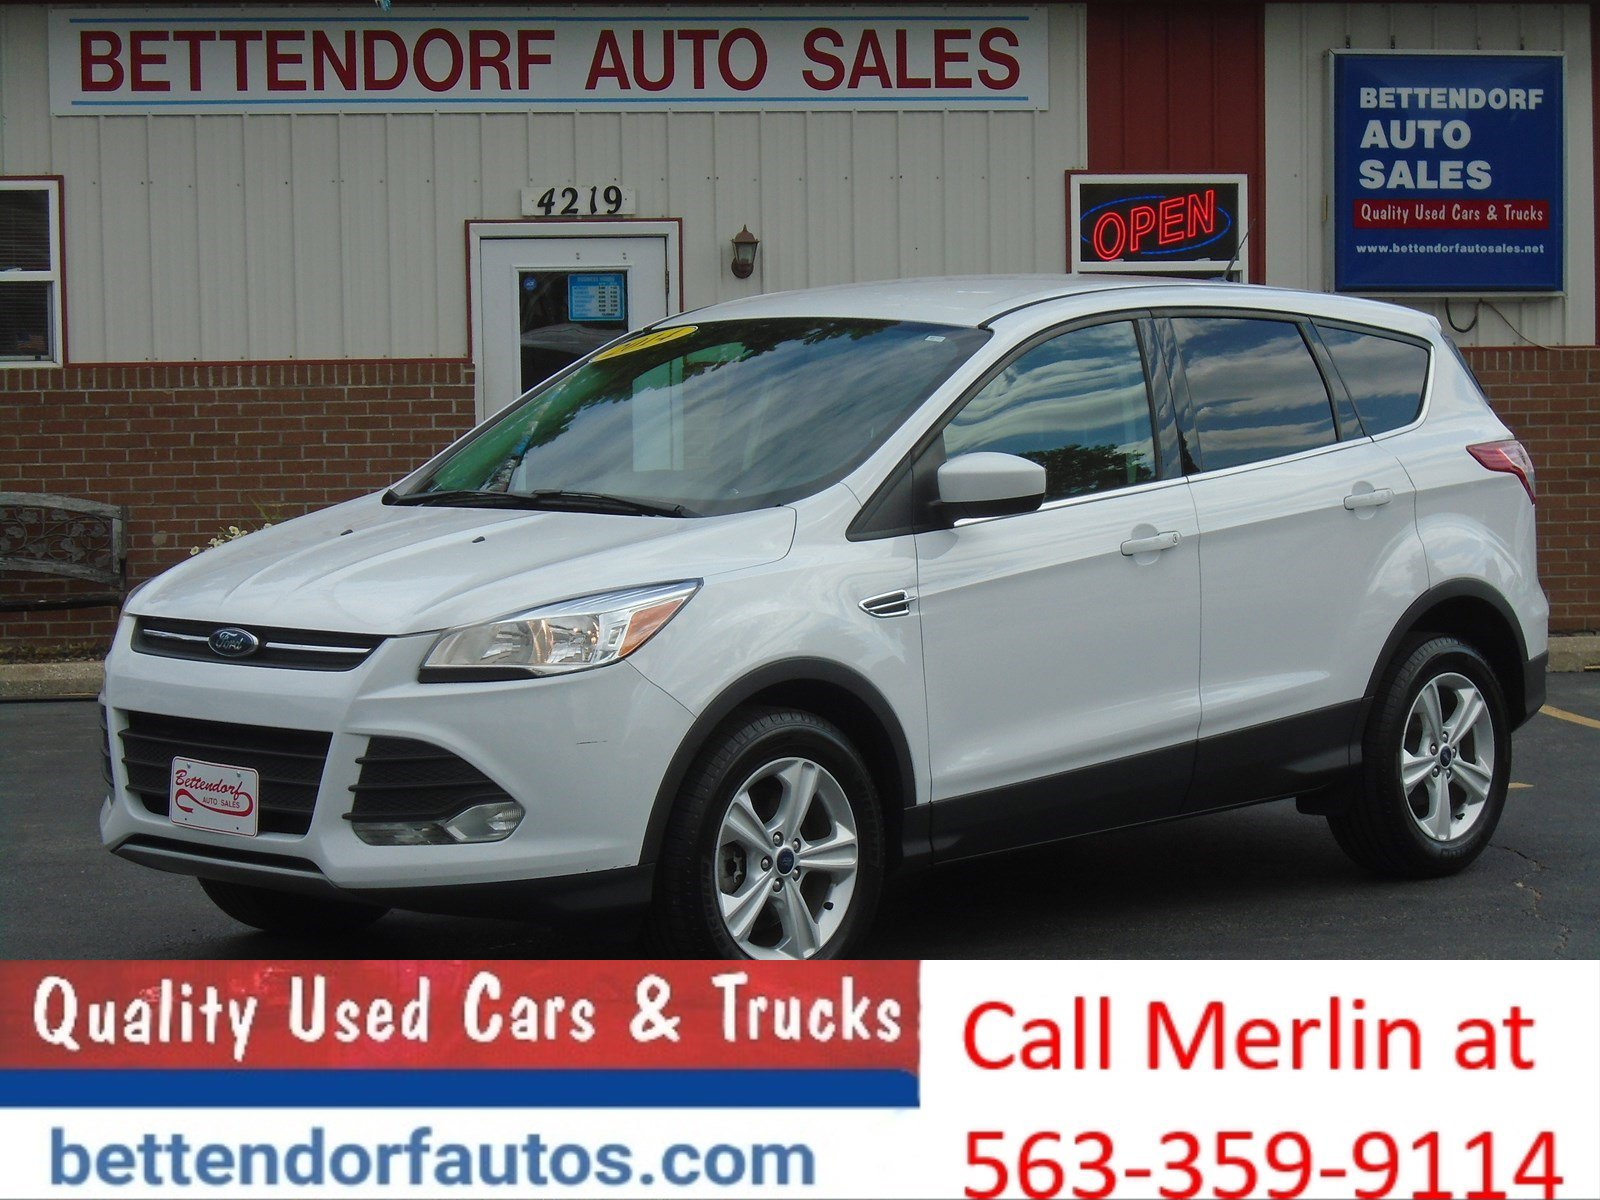 Bettendorf Auto Sales › Pre-Owned Inventory